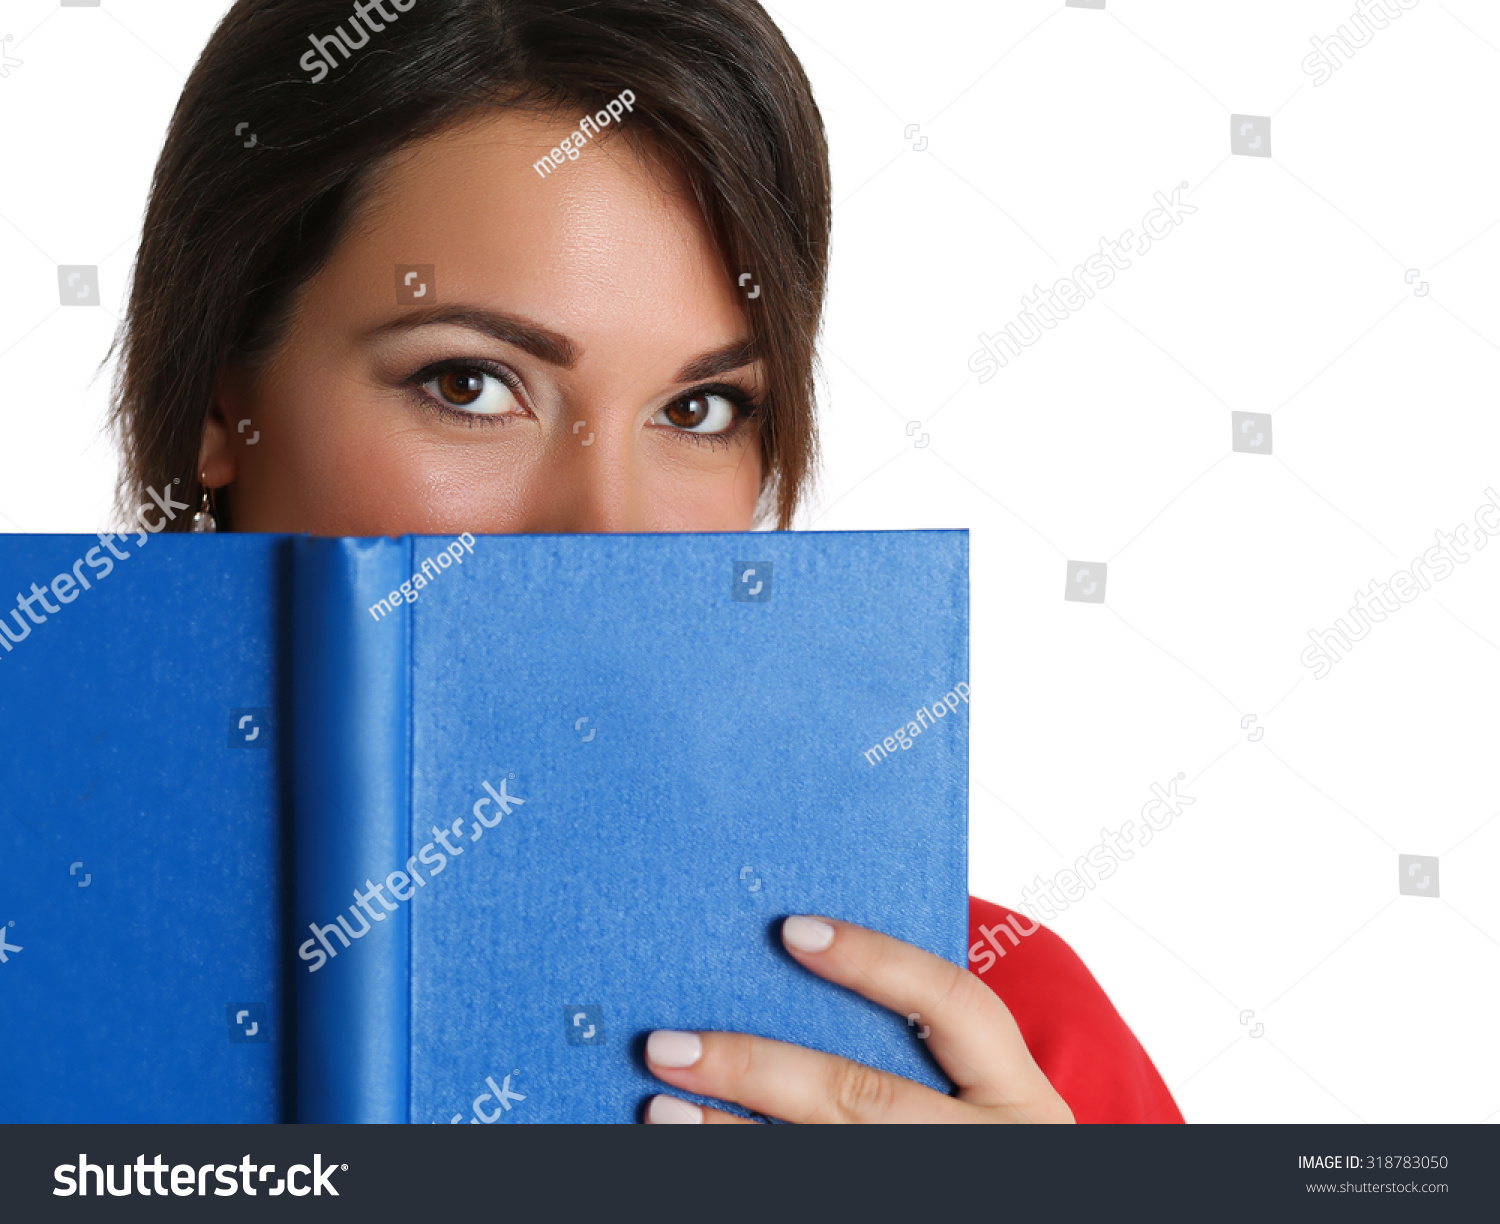 Book Covering Face : Beautiful brunette woman red dress covering stock photo